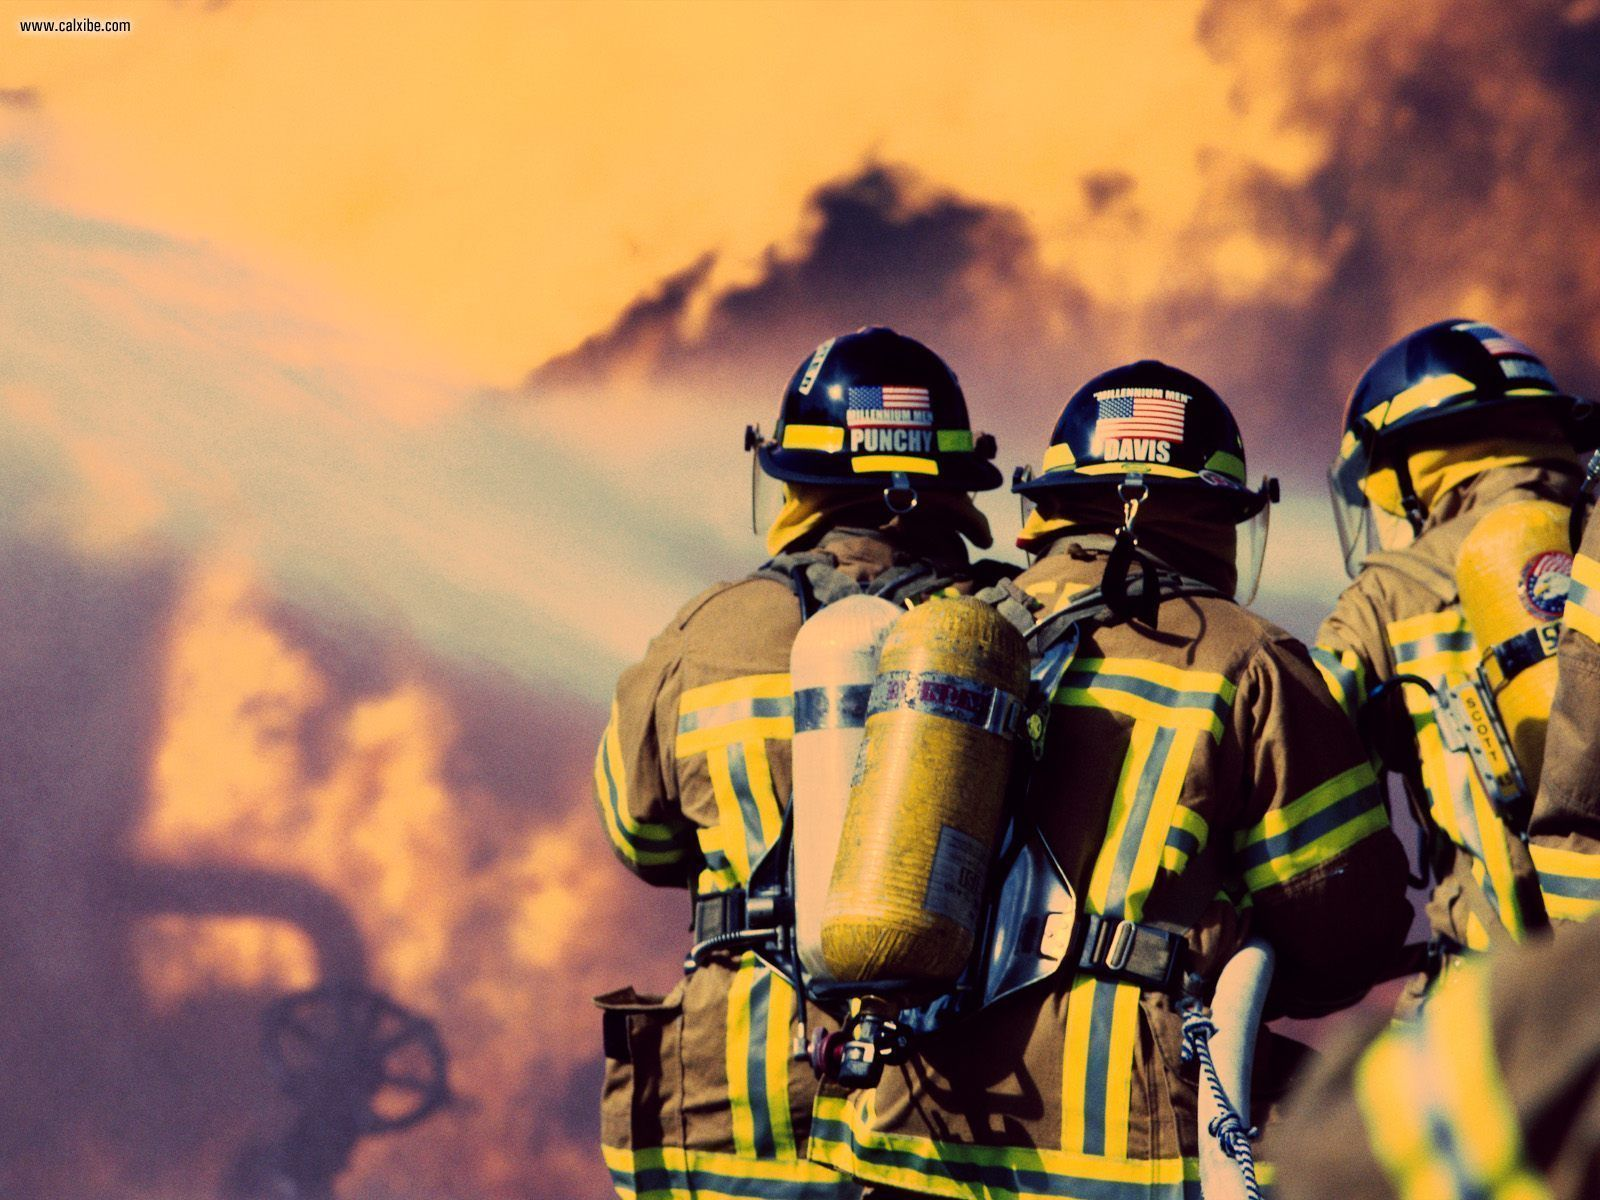 Firefighter Wallpaper! - Wallpaper Backgrounds on the App Store